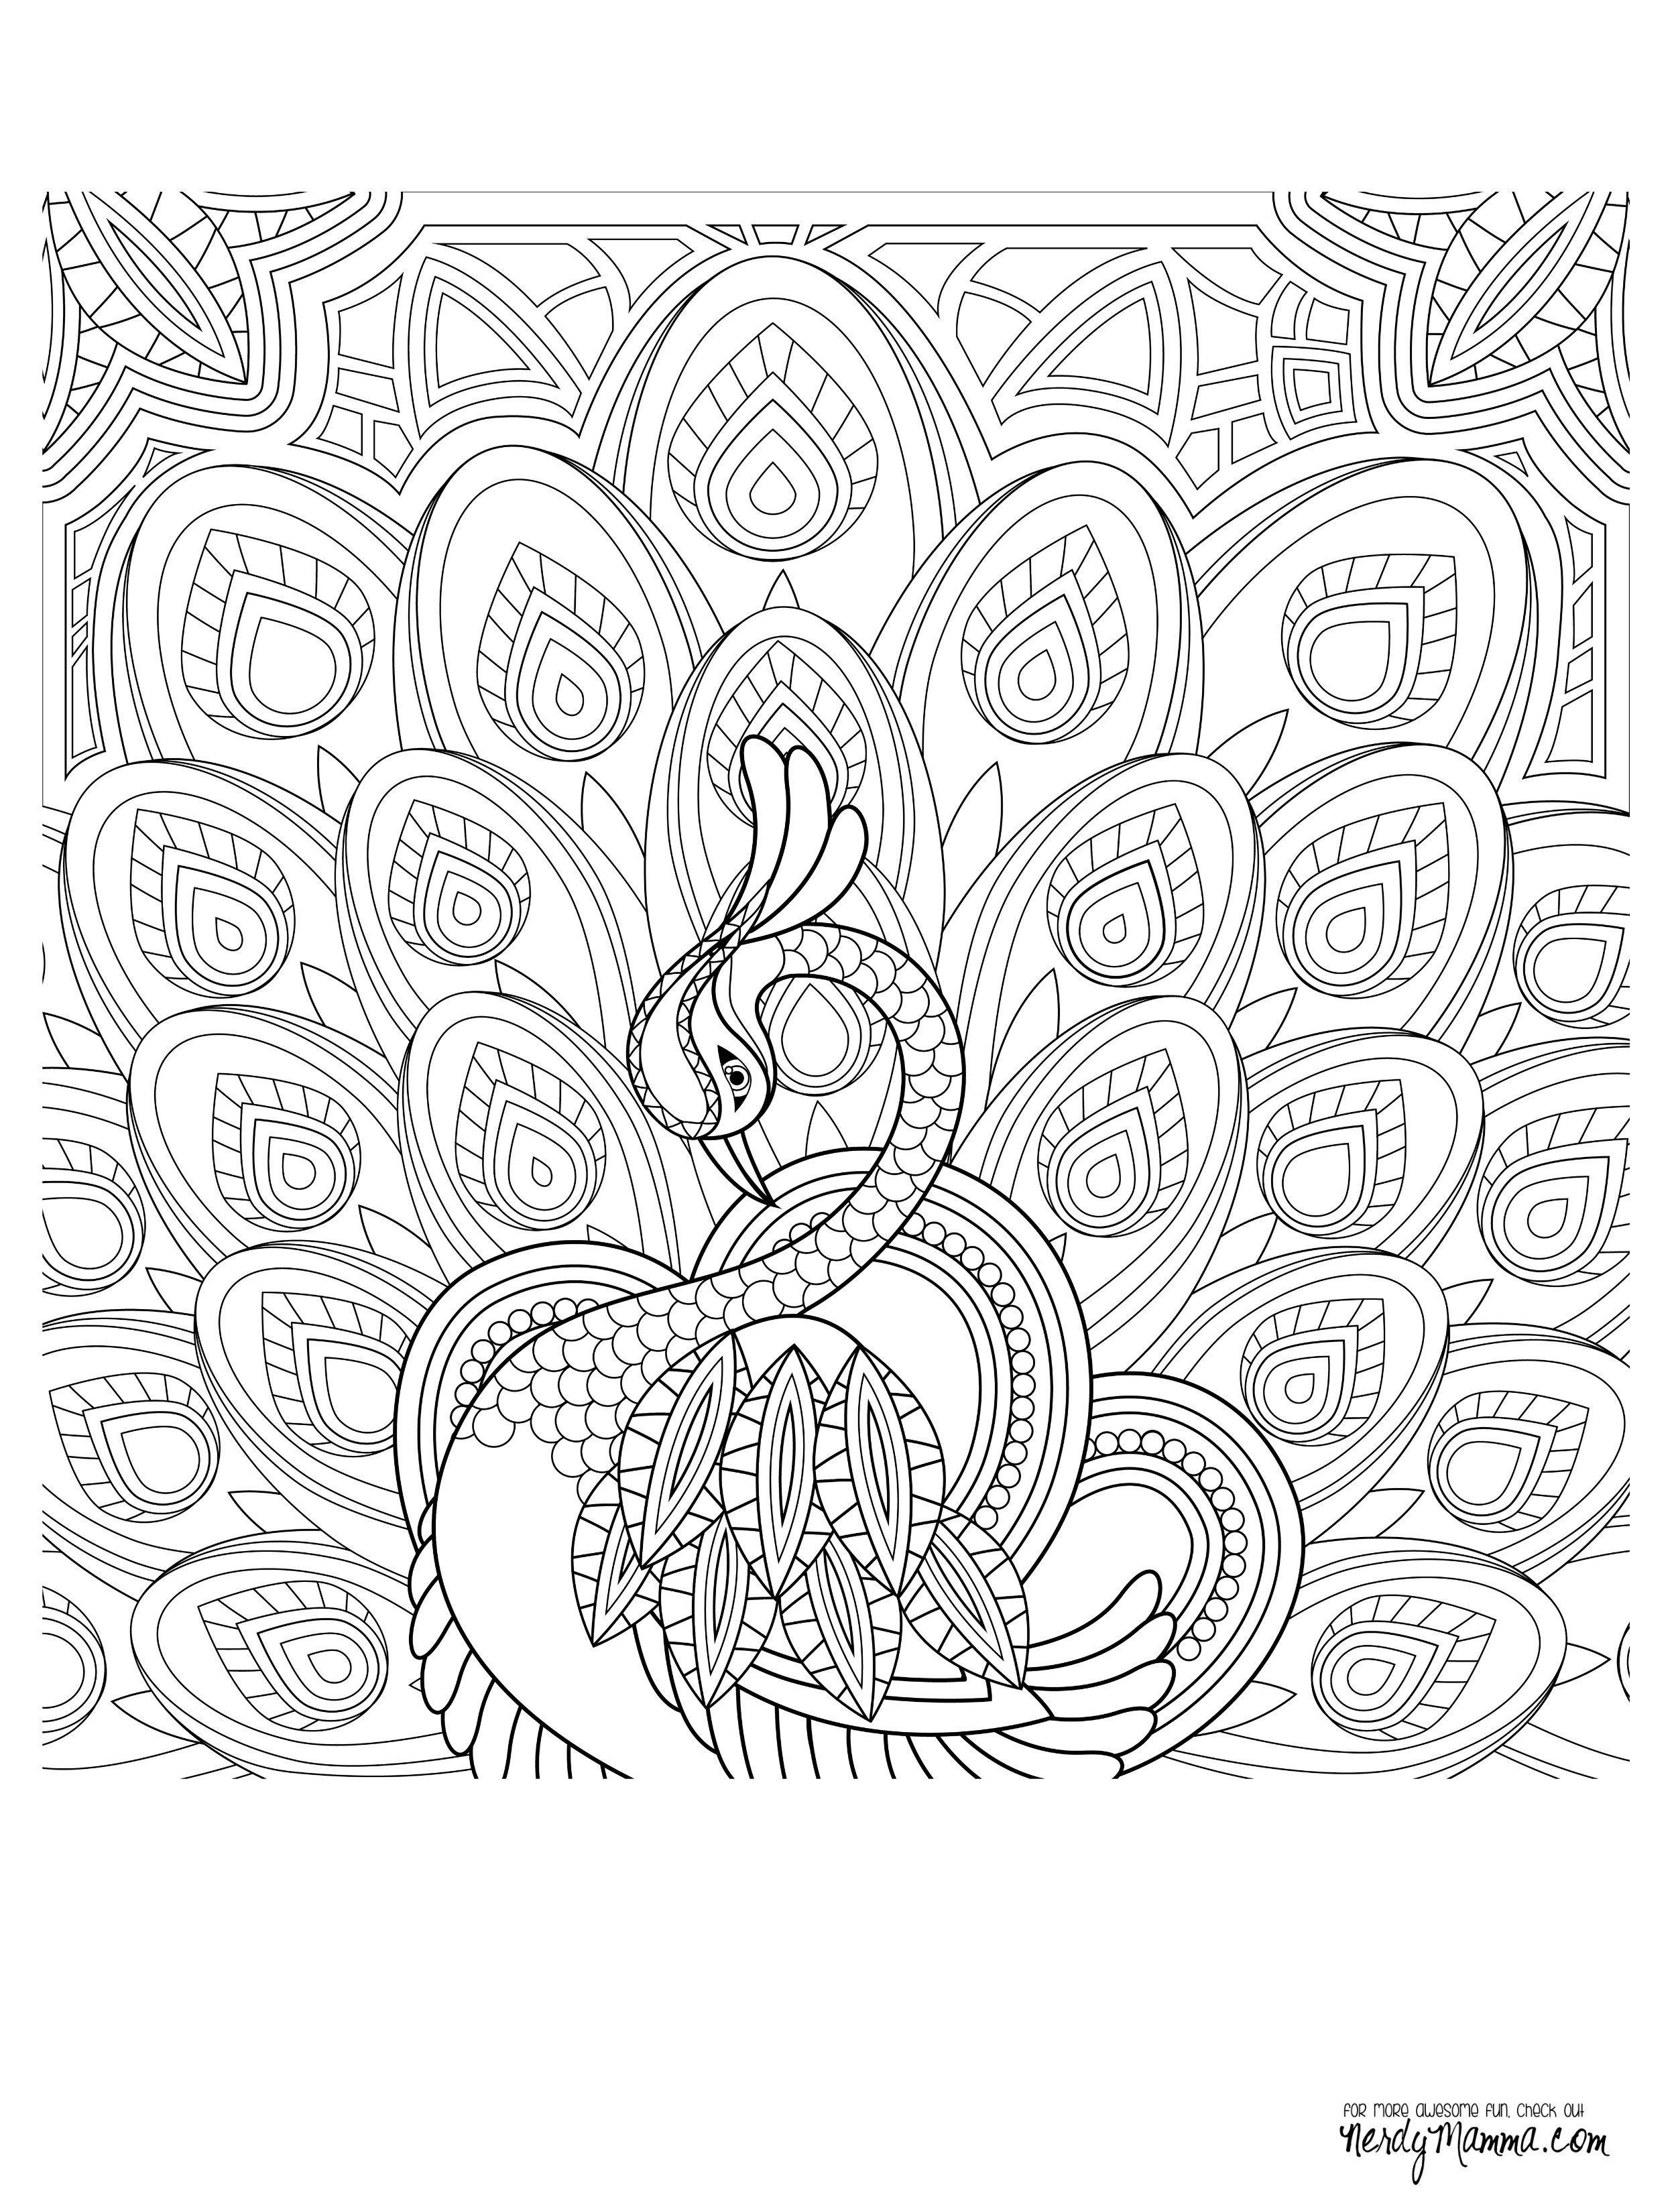 all coloring pages Collection-Mal Coloring Pages Fresh Crayola Pages 0d – Voterapp 3-n